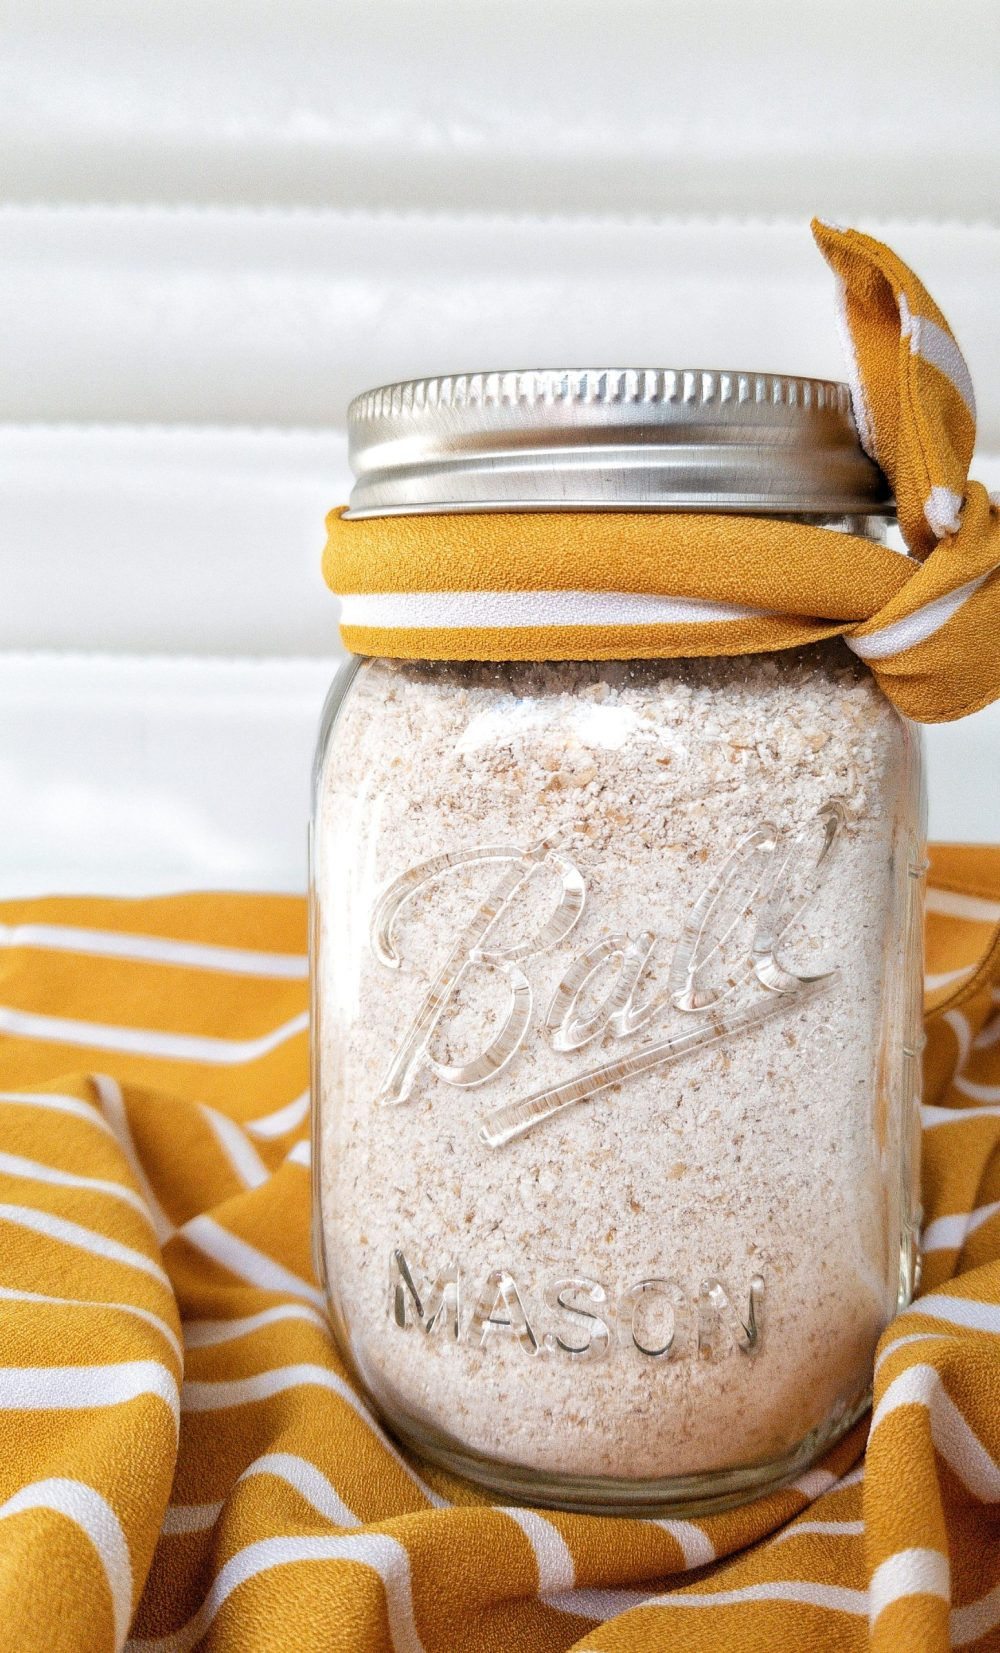 Oat flour in a glass mason jar tied with a yellow and white ribbon